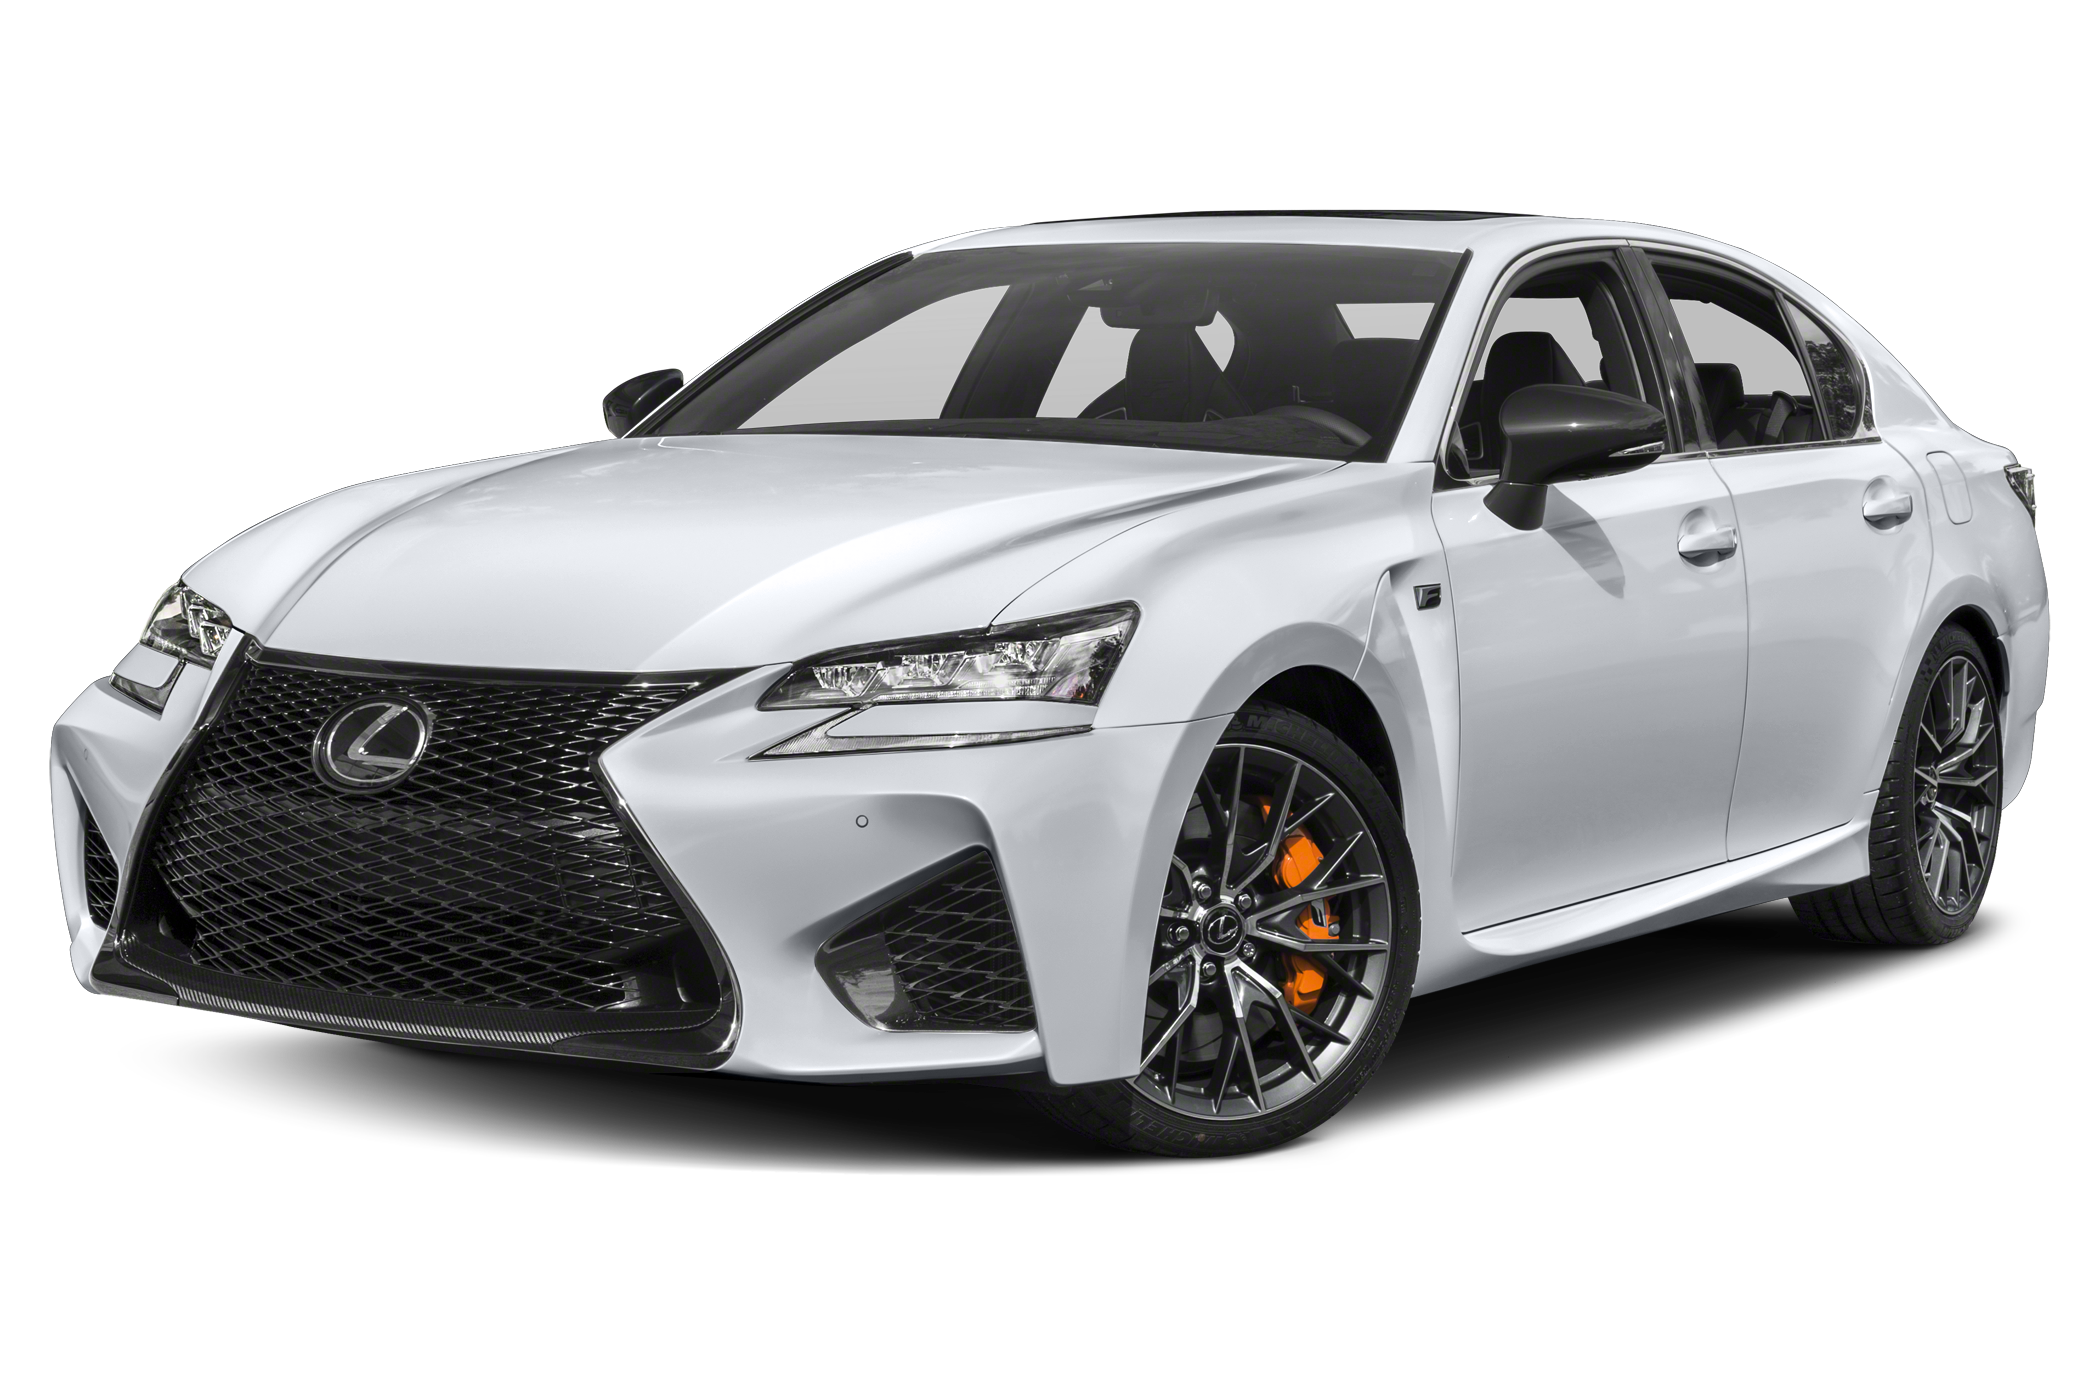 pw dealer your ab more conditions disclaimer and credit approved on offers for edealer local south img new used pointe lexus lease regional see dealership finance apply edmonton user